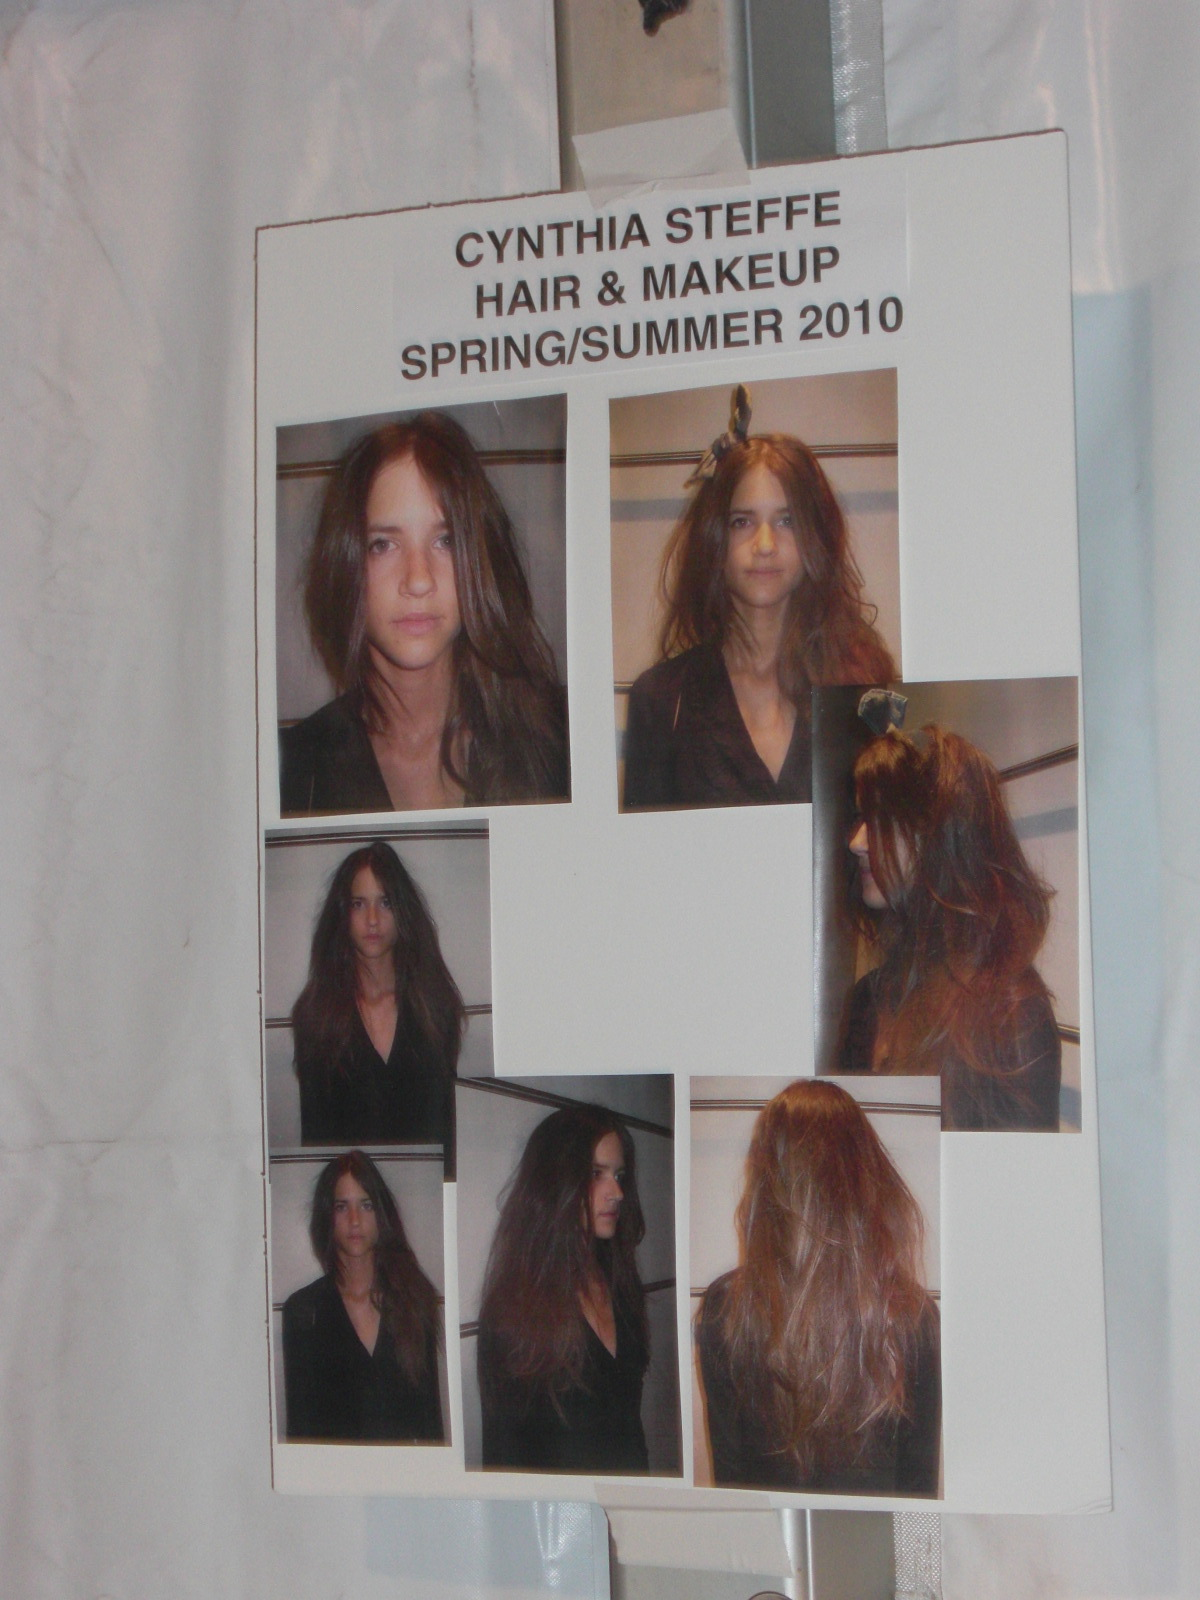 The board showing what the hair and makeup should look like